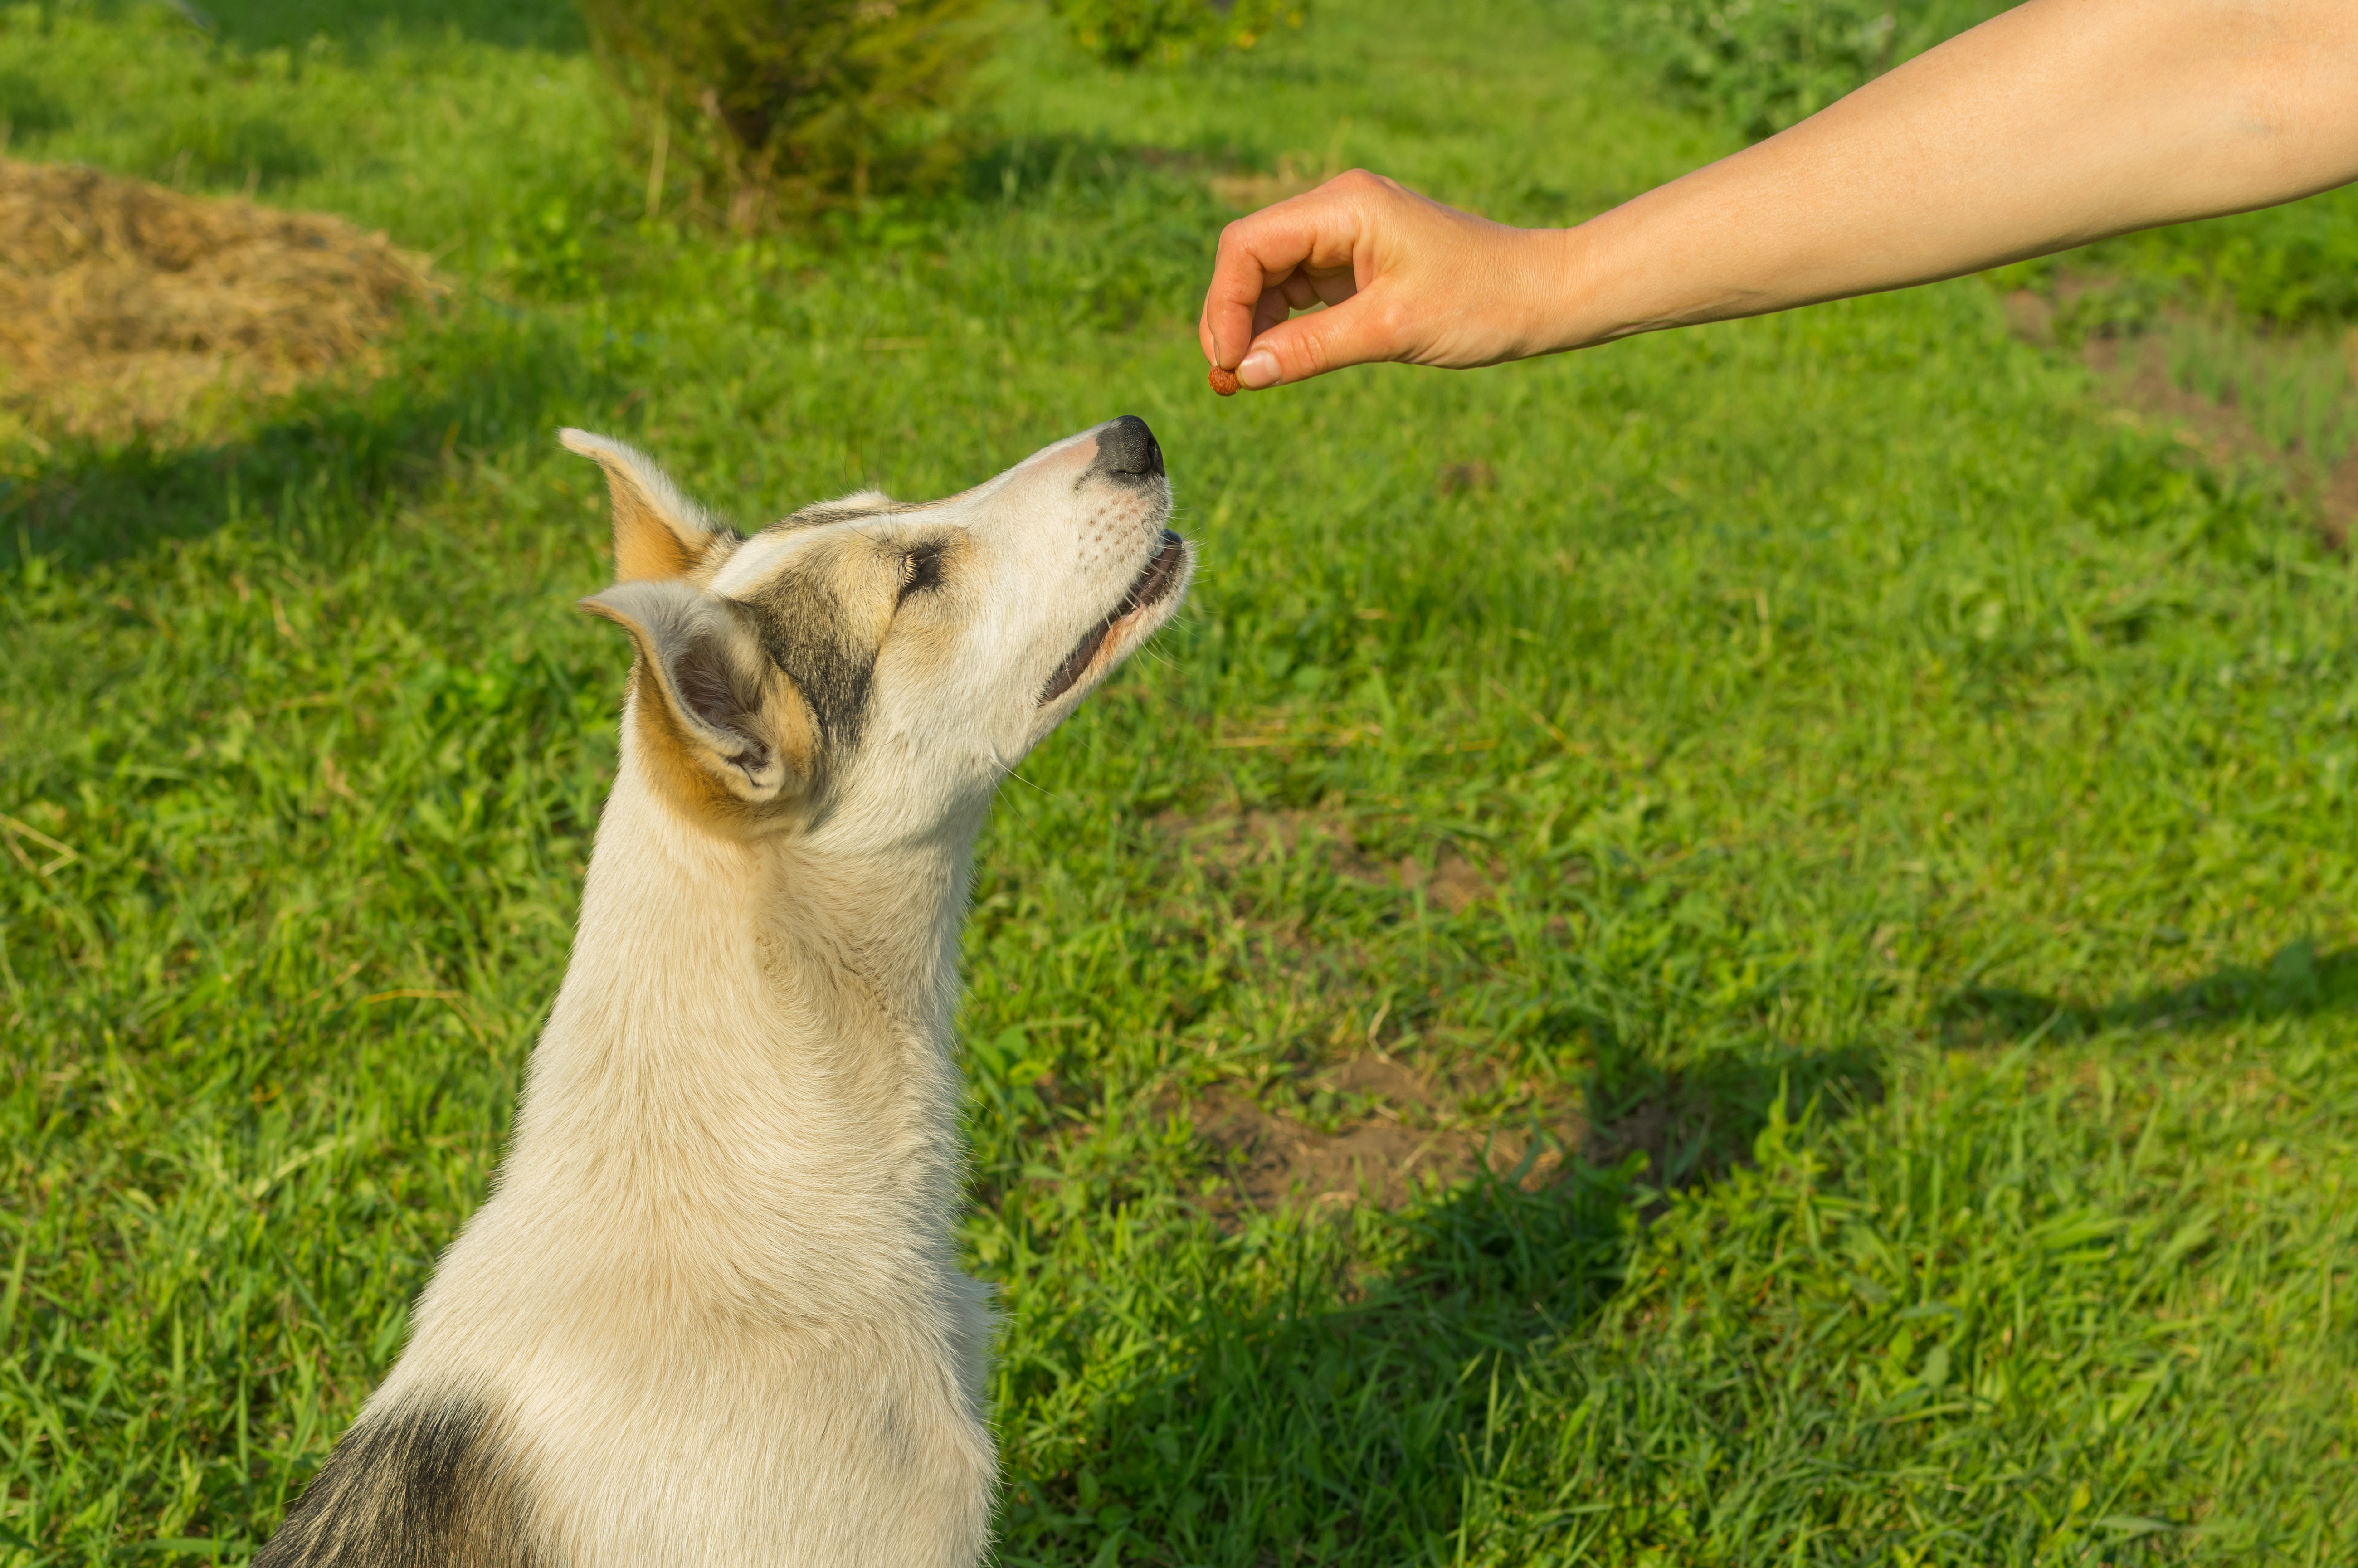 Master feeding young dog while training simple commands